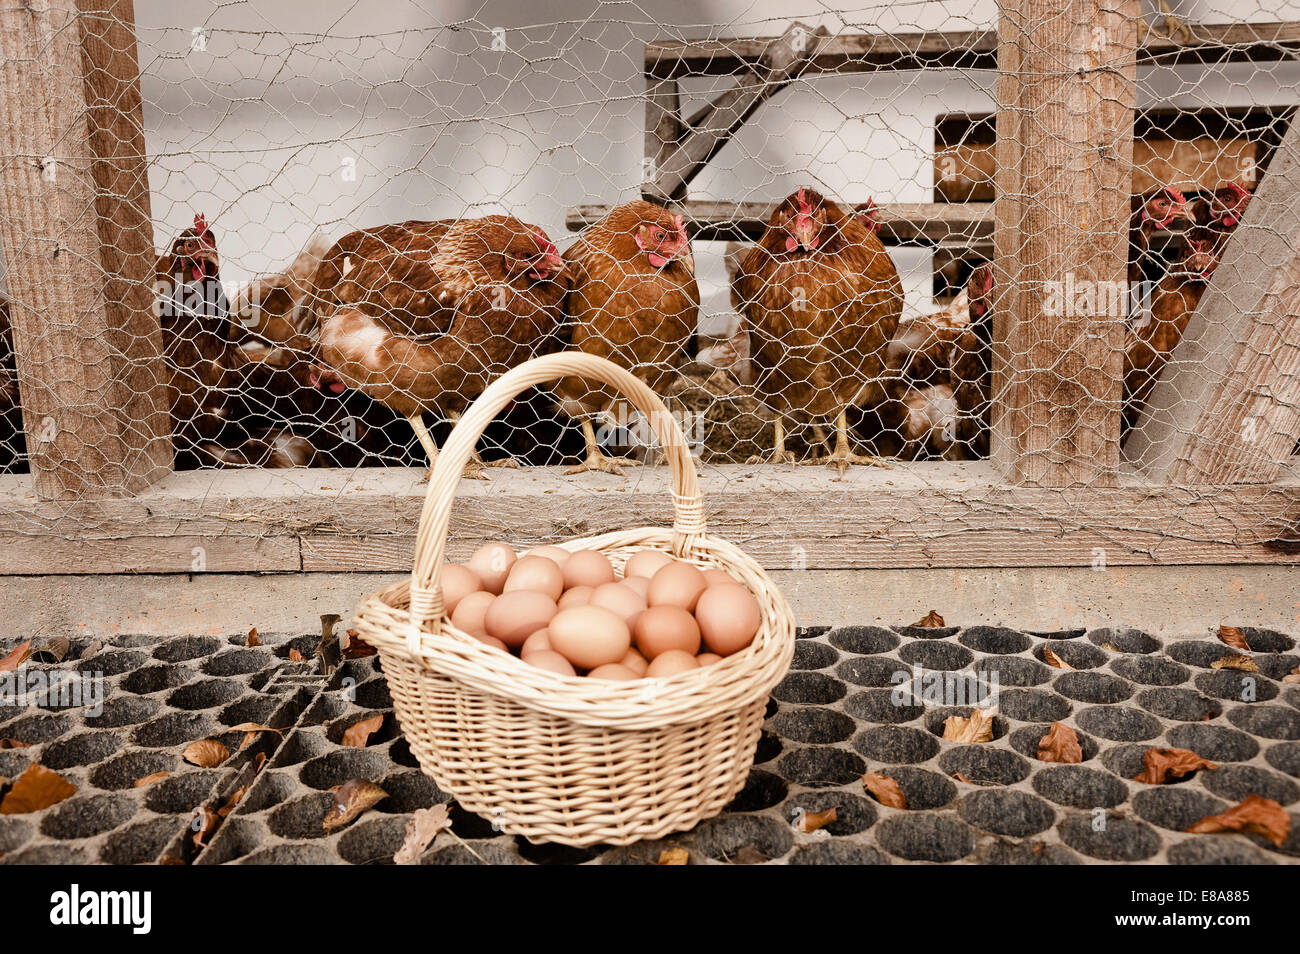 Basket with eggs at henhouse on organic farm - Stock Image